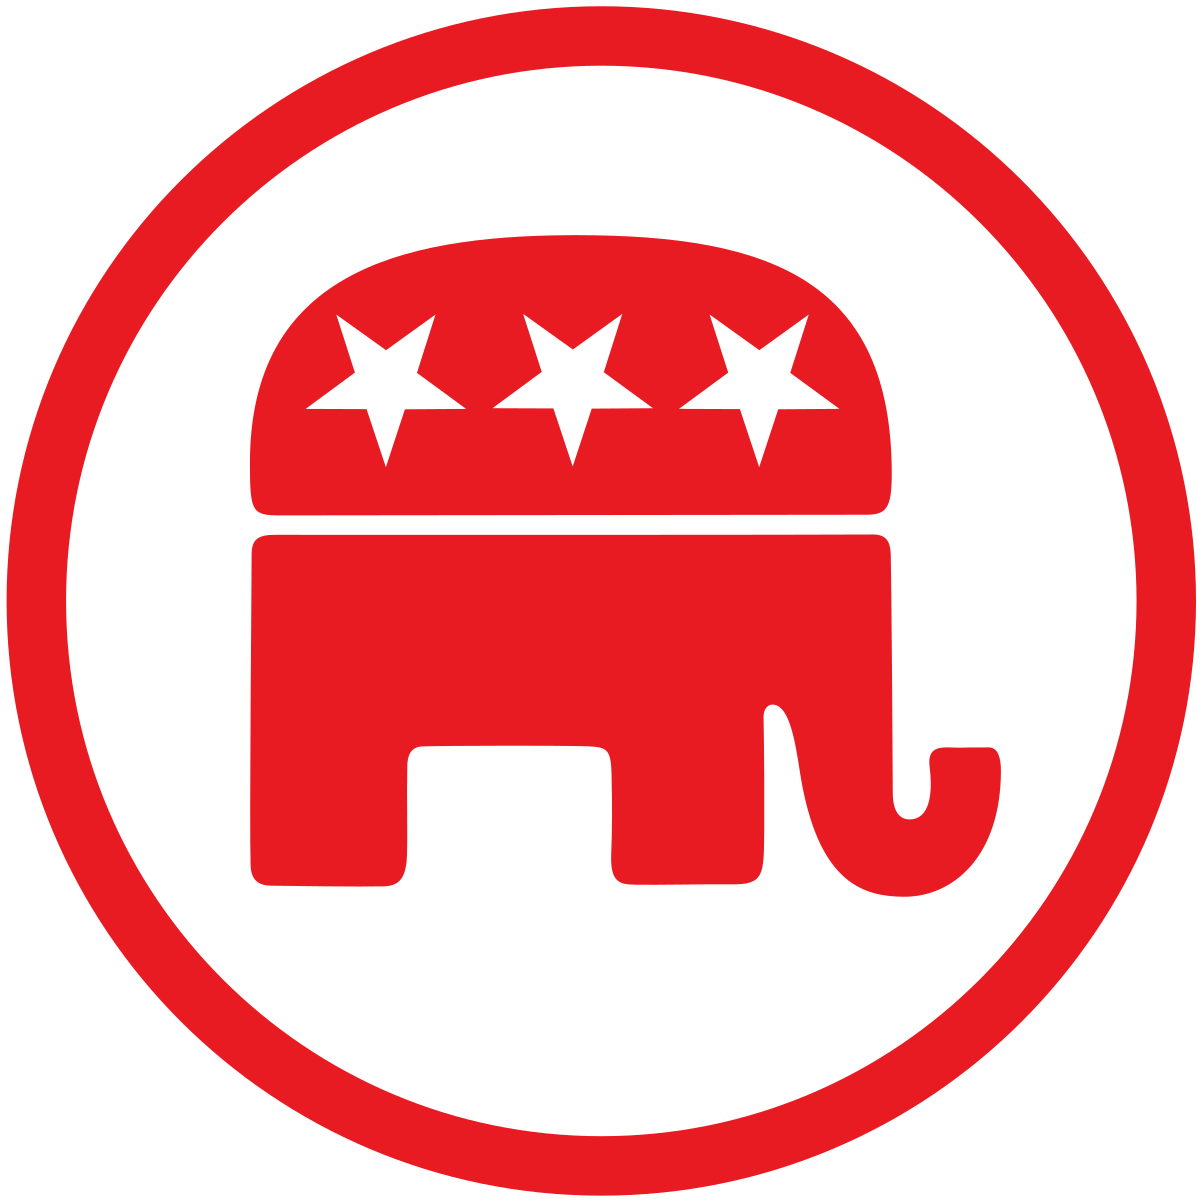 Republican party united states. Leader clipart majority leader